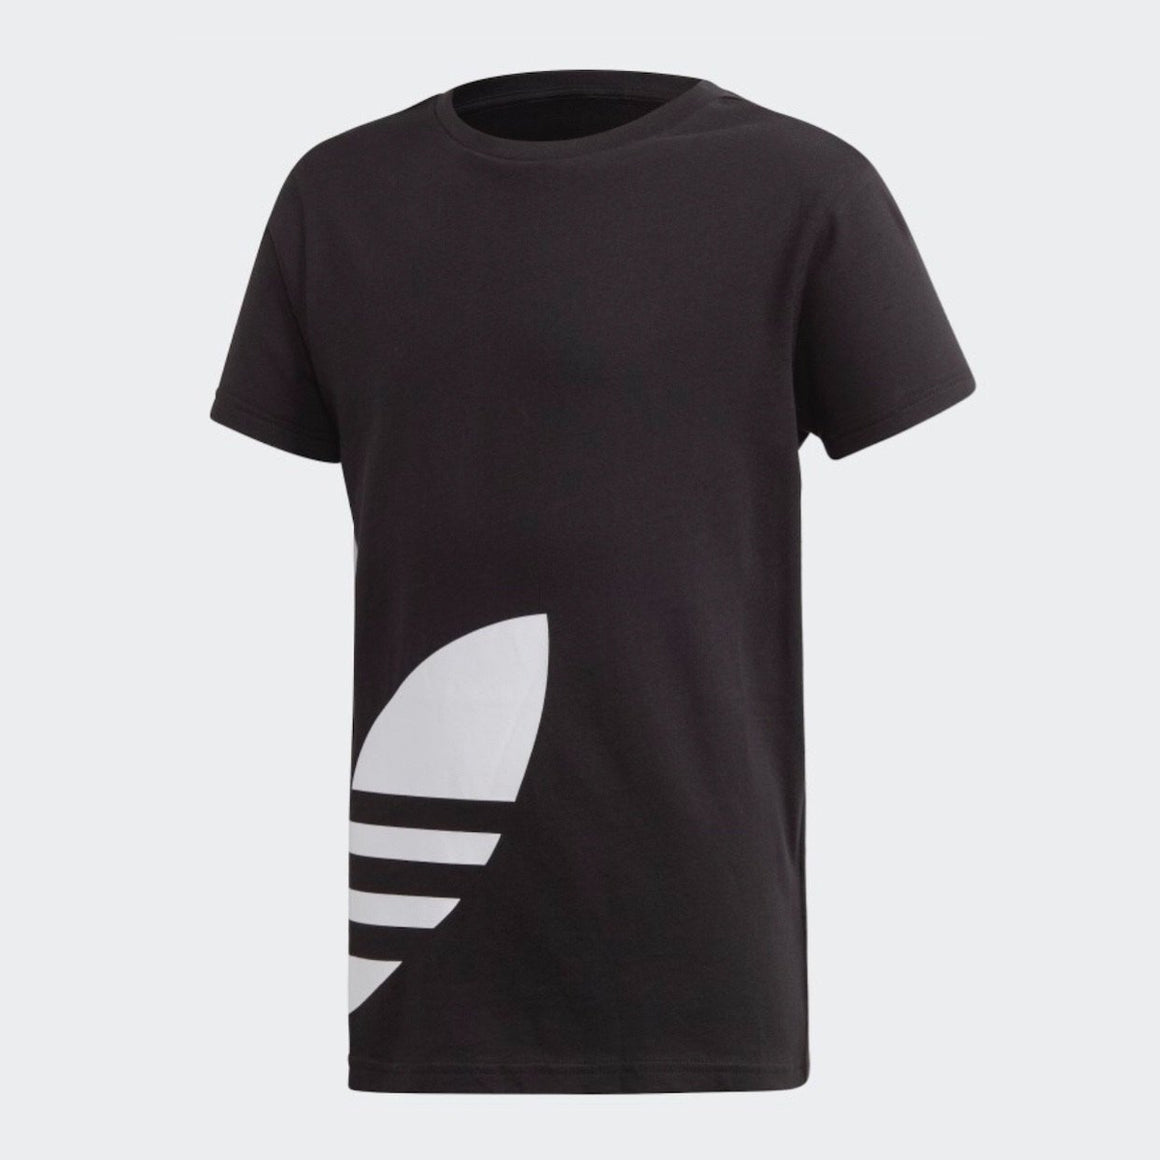 FM5641 Adidas - Youth Big Trefoil T - Black Short Sleeve Shirts Adidas